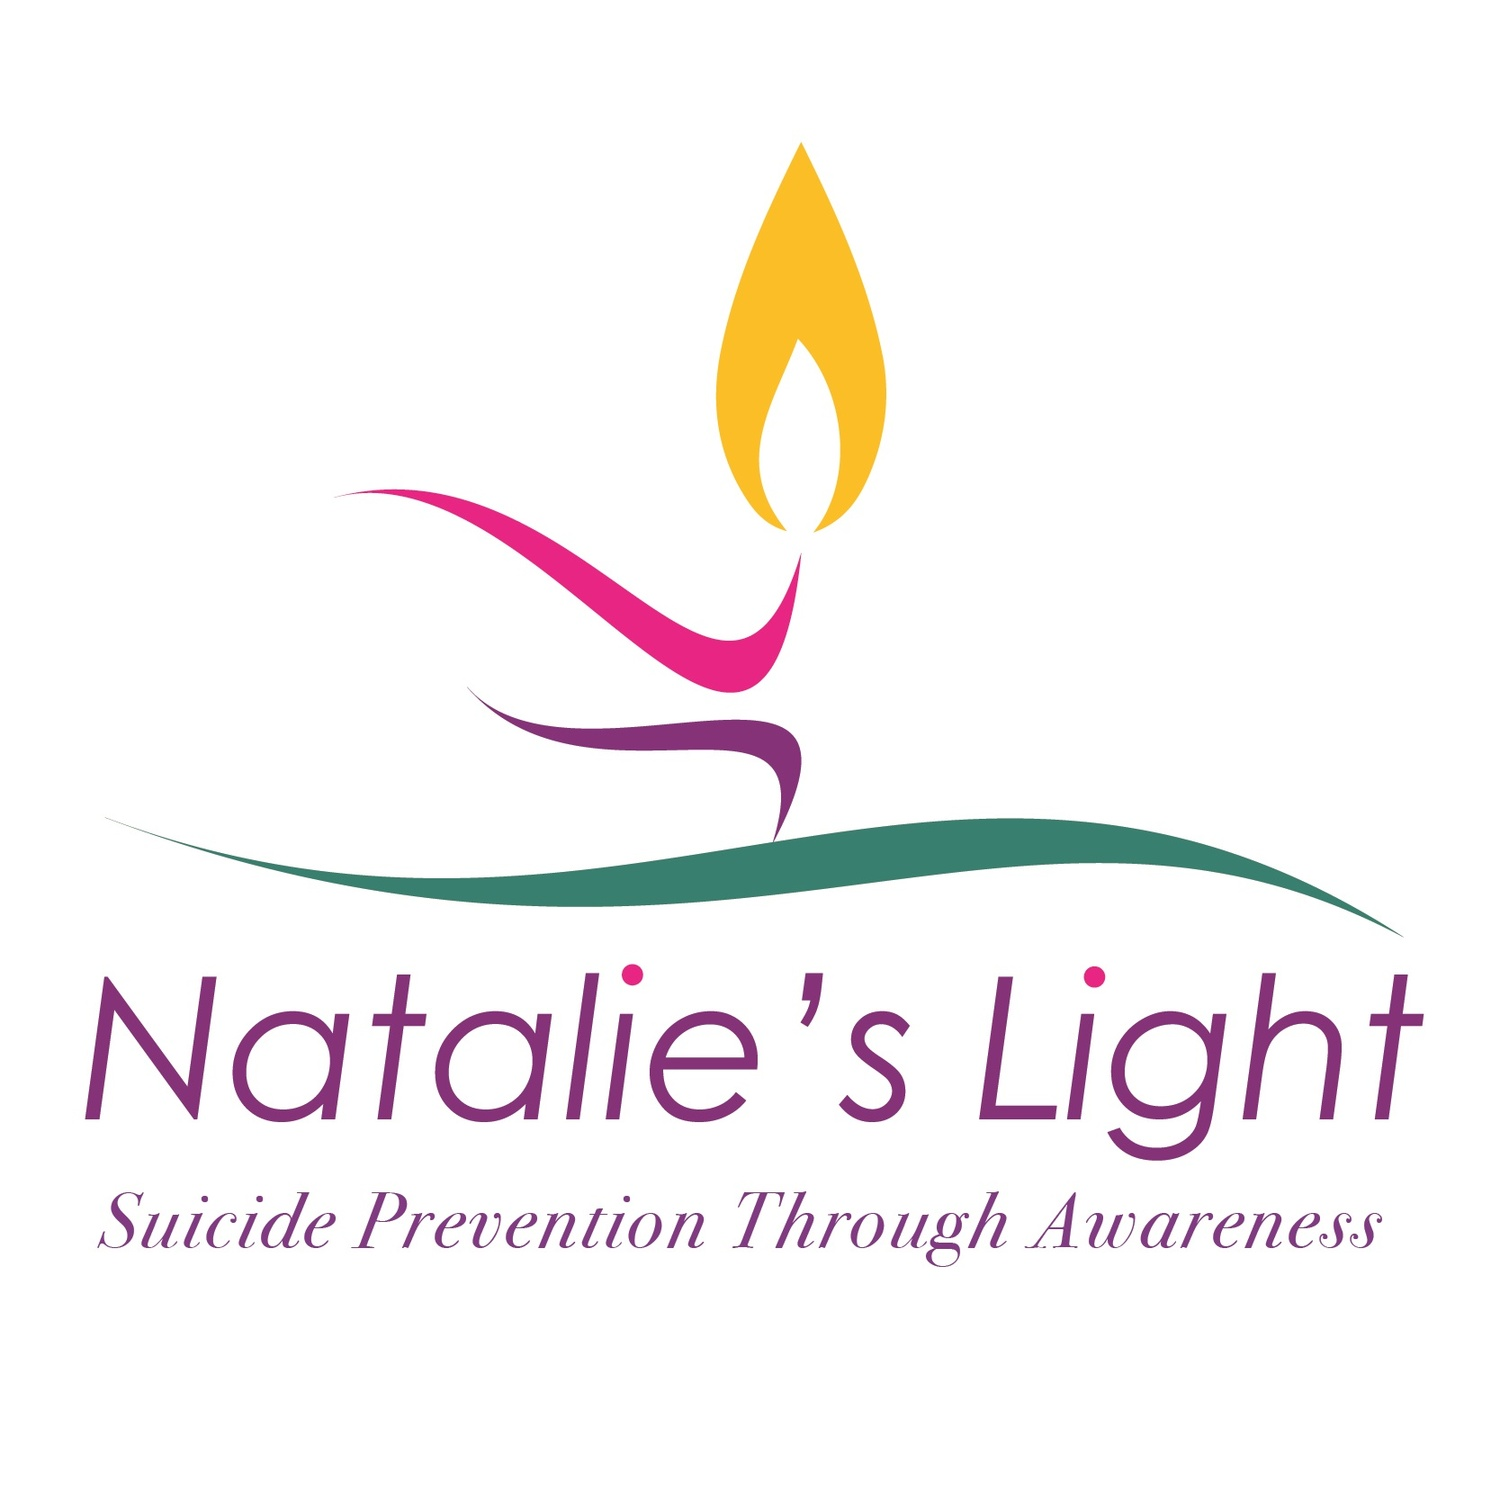 Natalie's Light